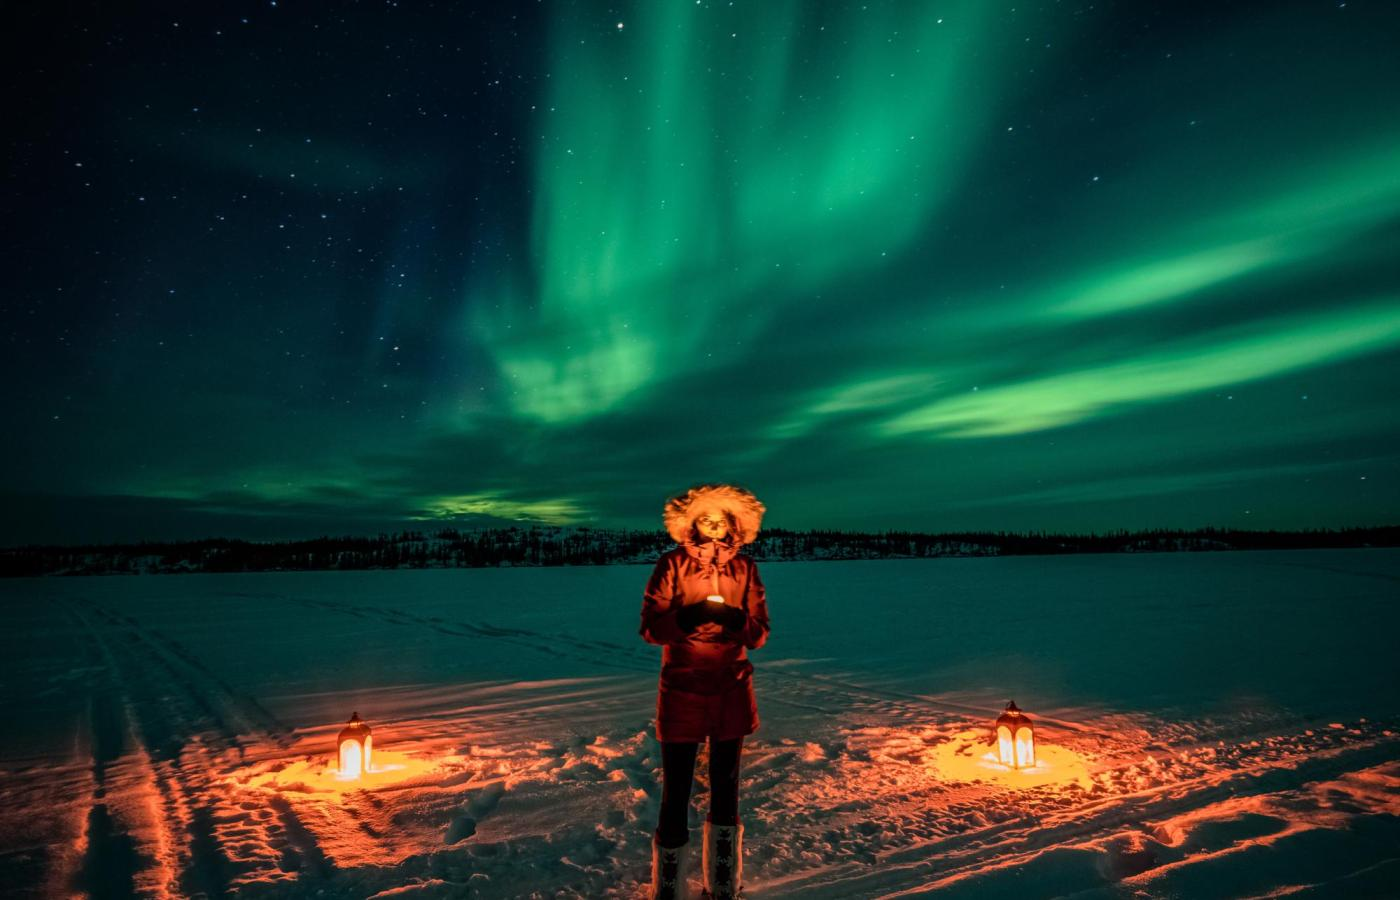 A woman in a parka holds a lantern in the snow as the northern lights shine bright